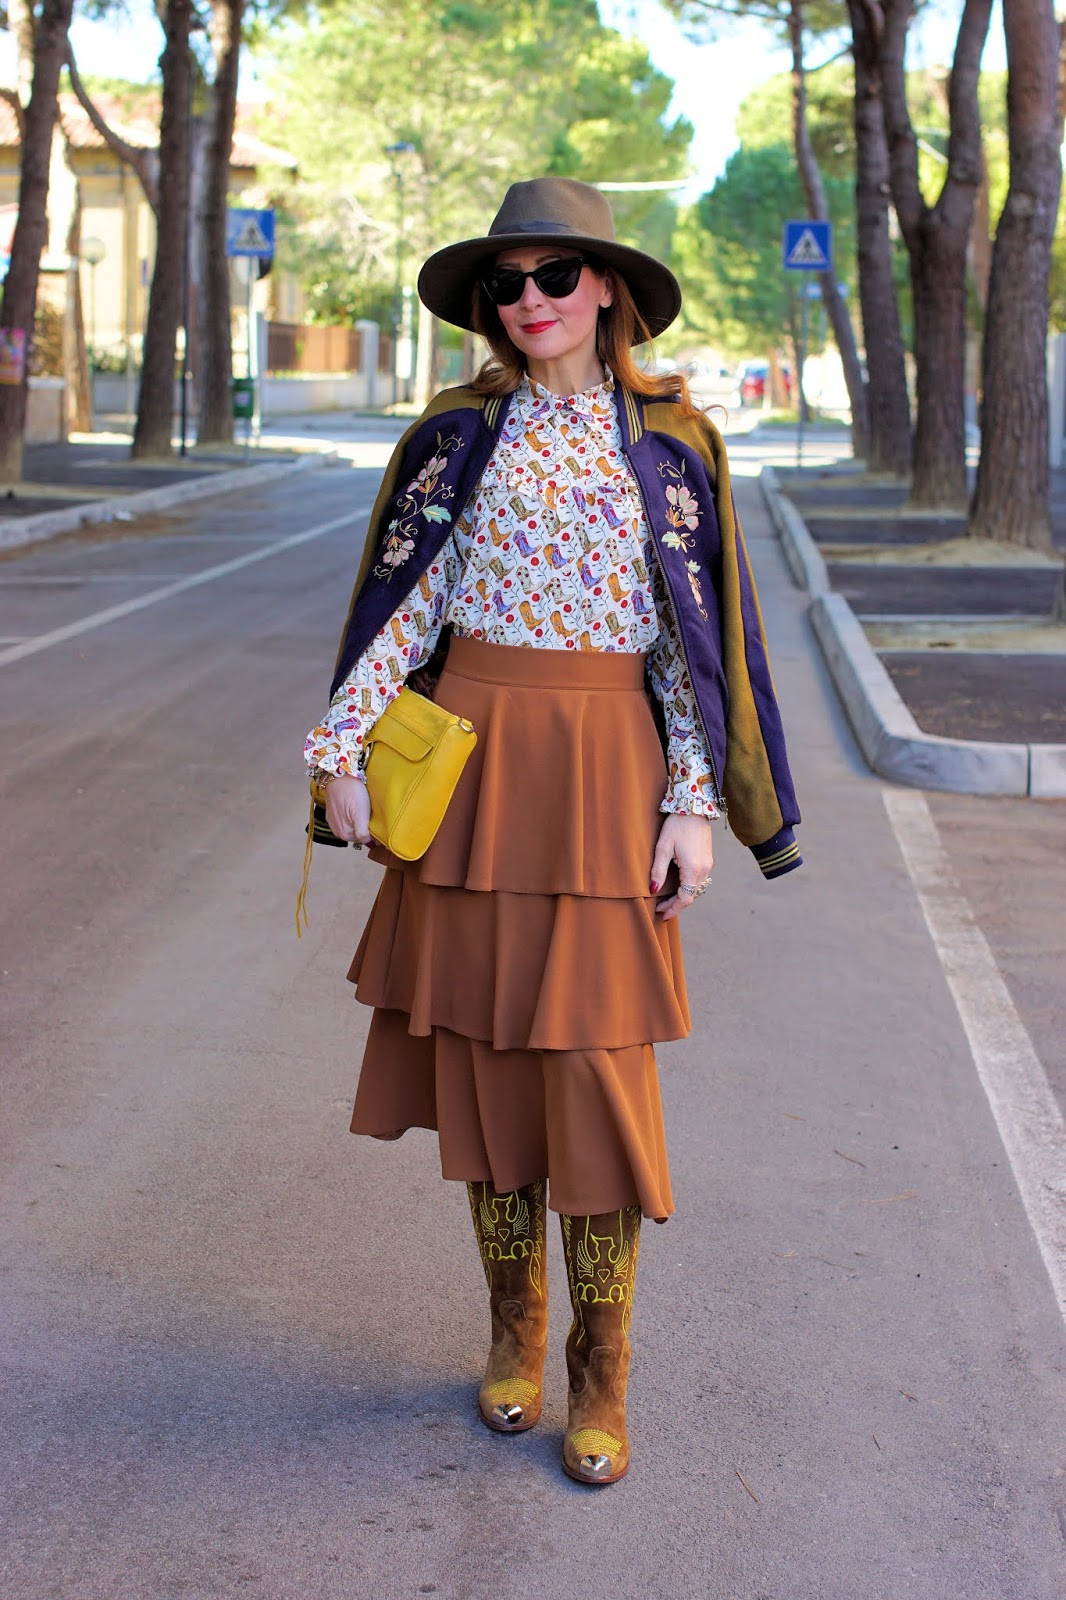 Ruffle skirt, baseball jacket: country mood outfit on Fashion and Cookies fashion blog, fashion blogger style